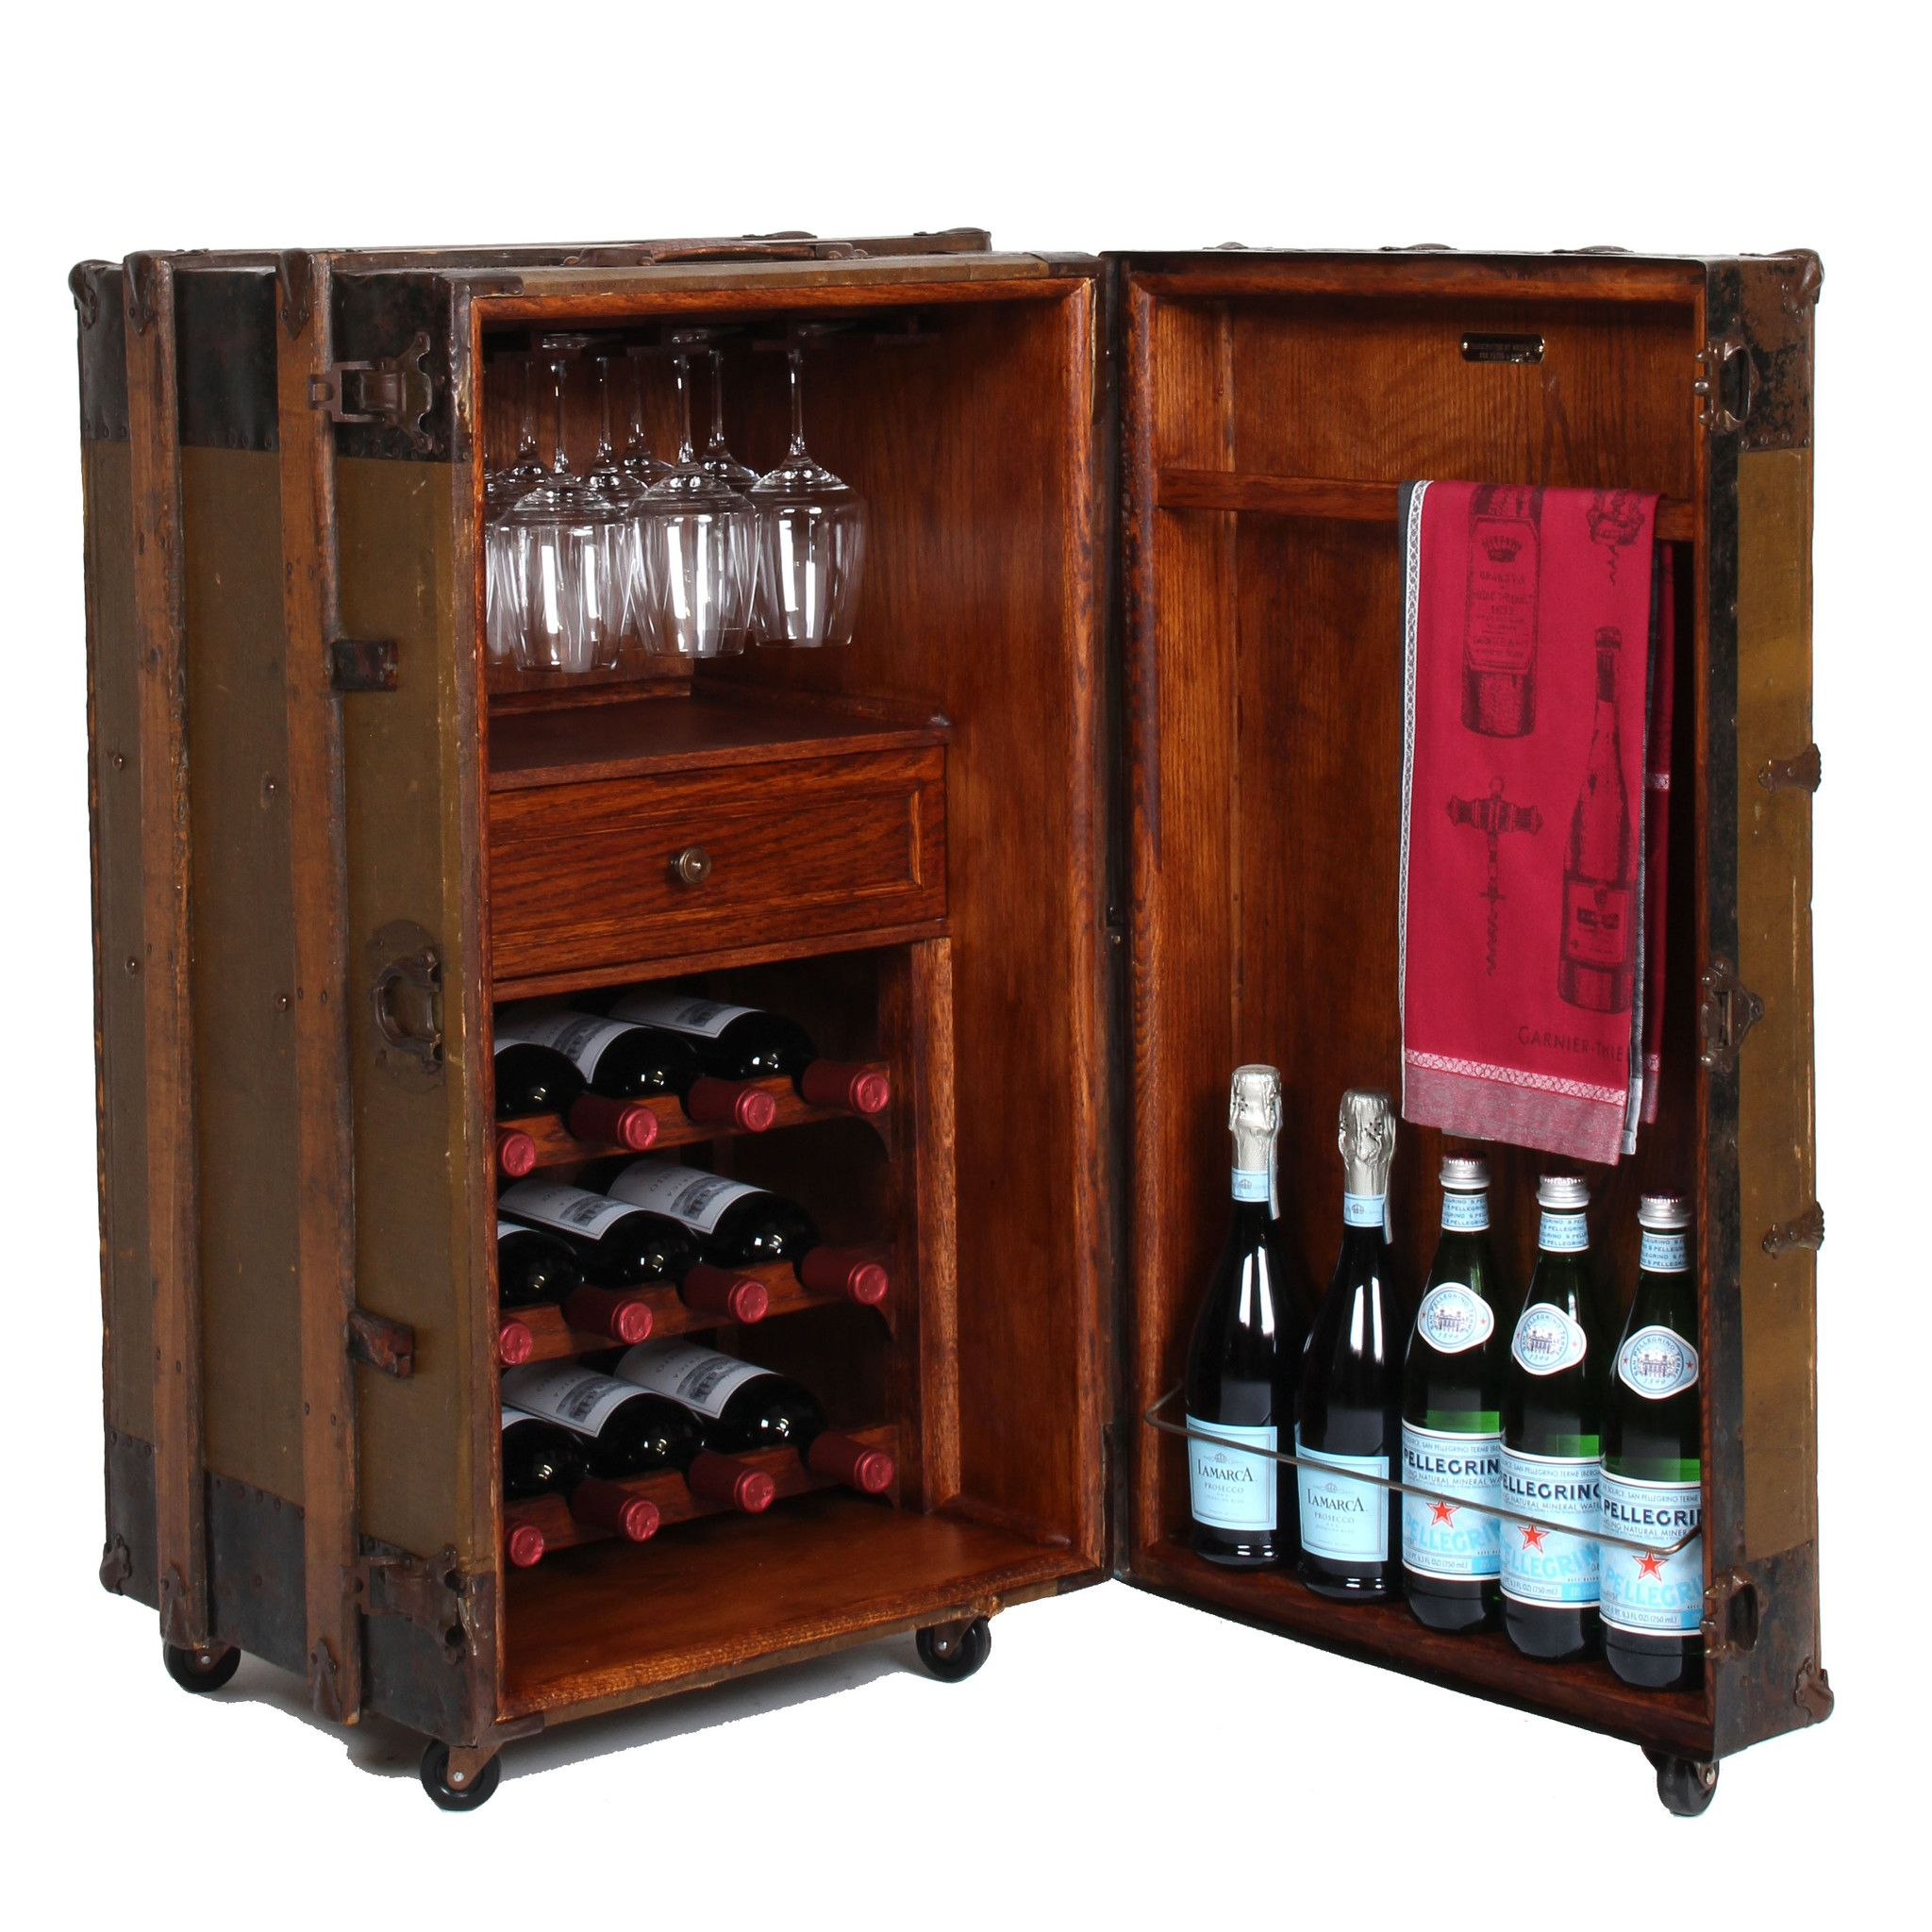 One Of A Kind Vintage Steamer Trunk Wine Bar Cabinet Handcrafted By Fatto Mano Owner Mimo